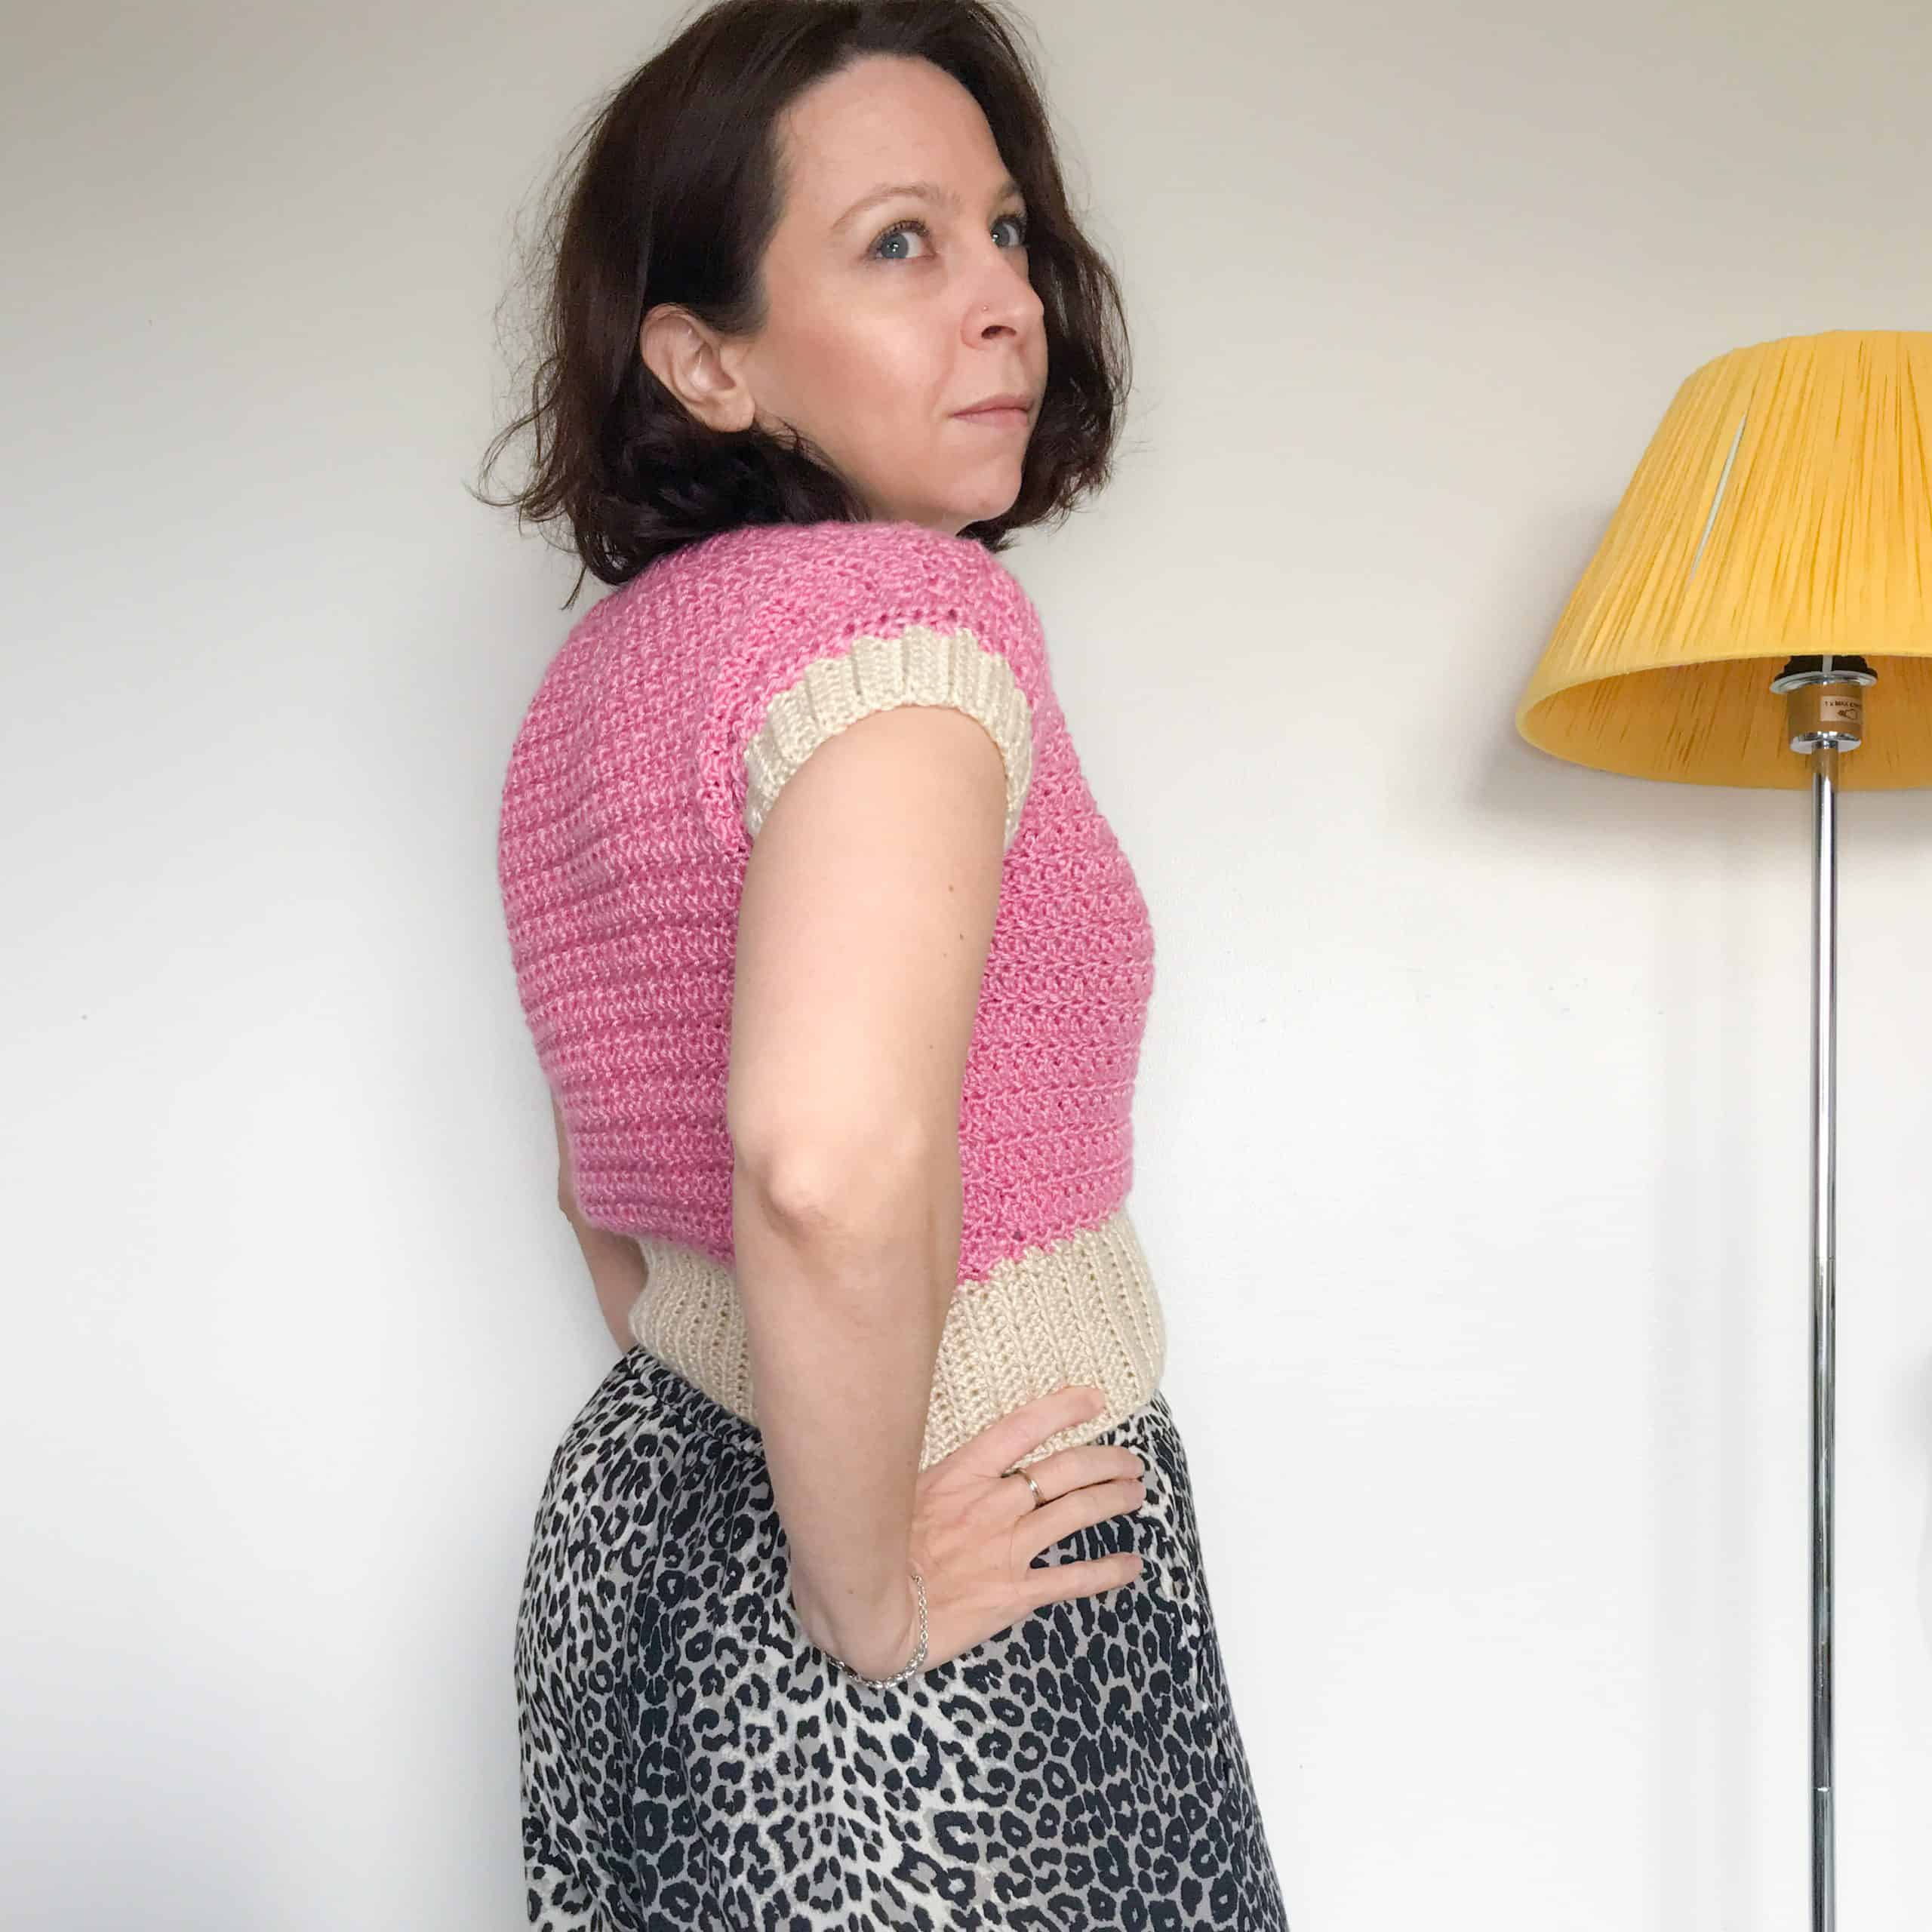 woman standing side onto the camera in front of a white wall, wearing a pink and cream crochet t-shirt and leopard print trousers. There is a yellow standing lamp behind her